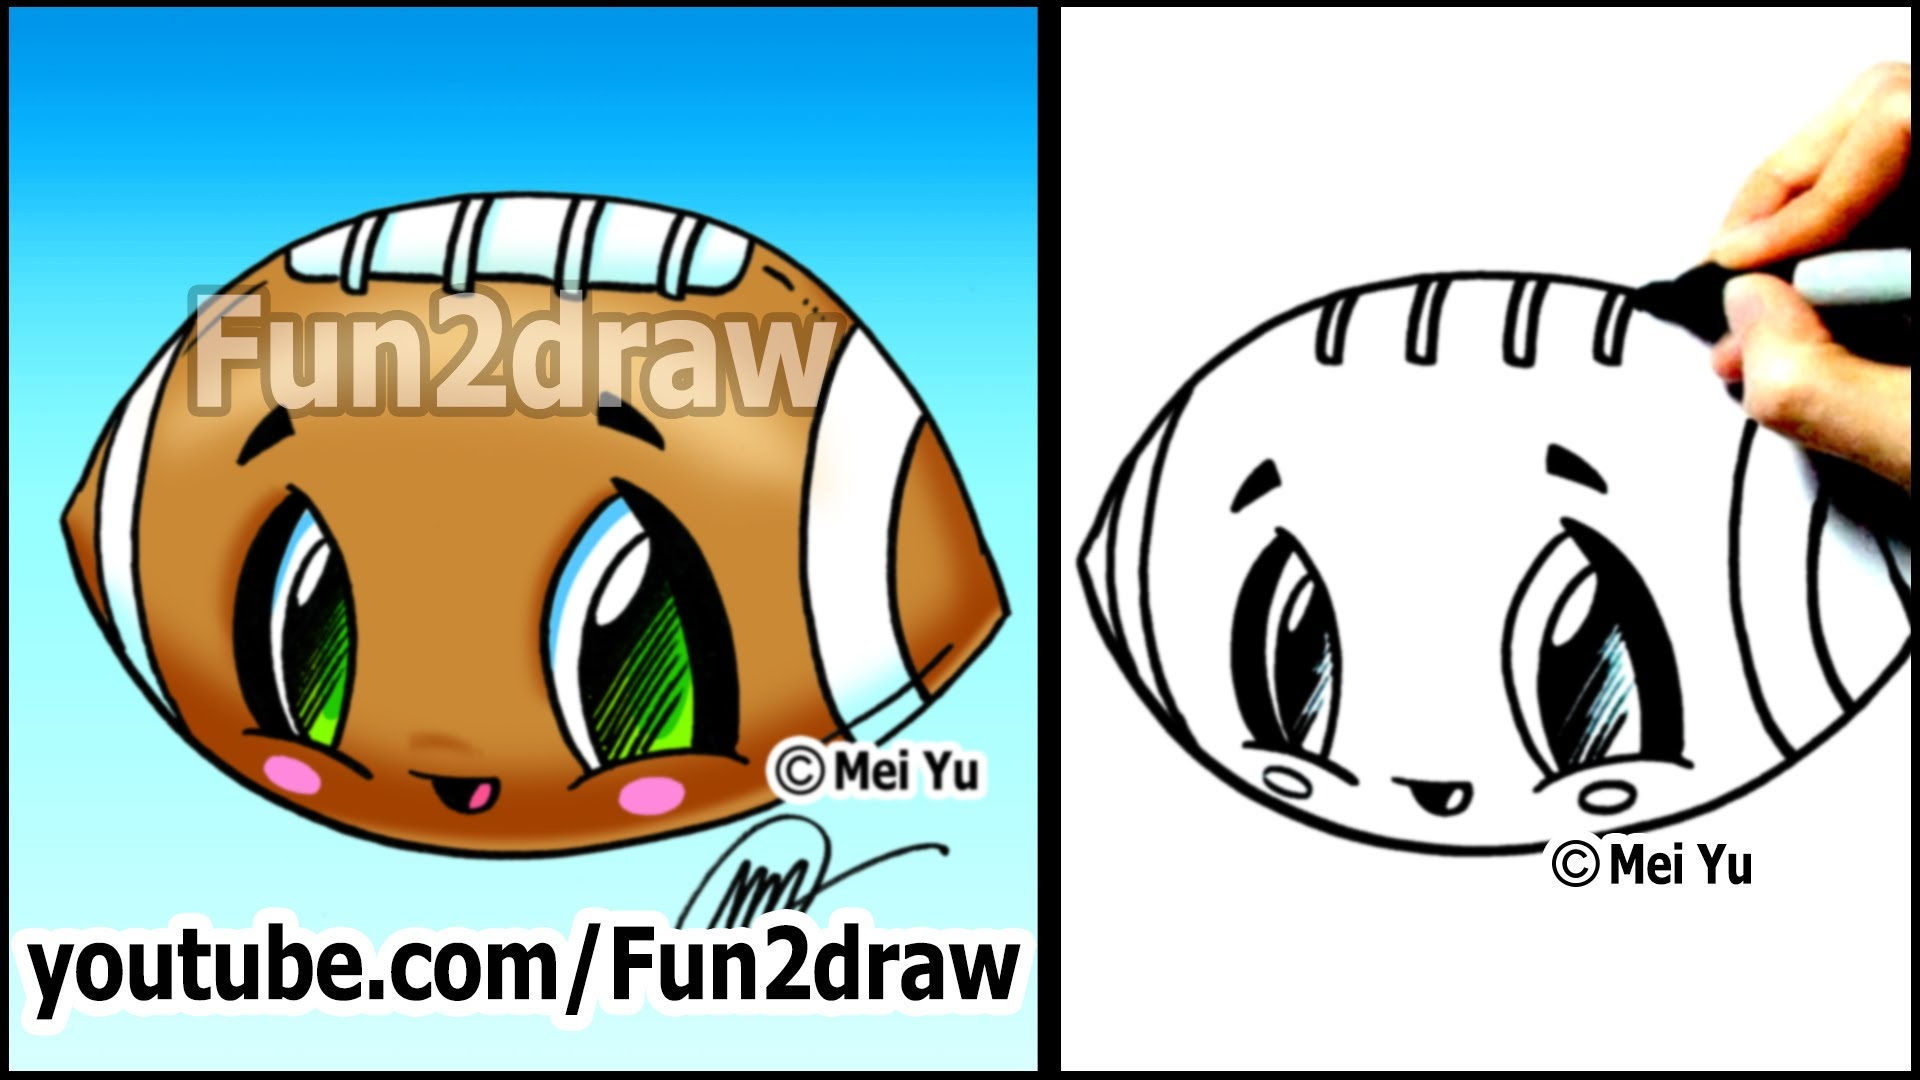 Drawn tacos fun2draw Football Tutorials Easy to Drawing